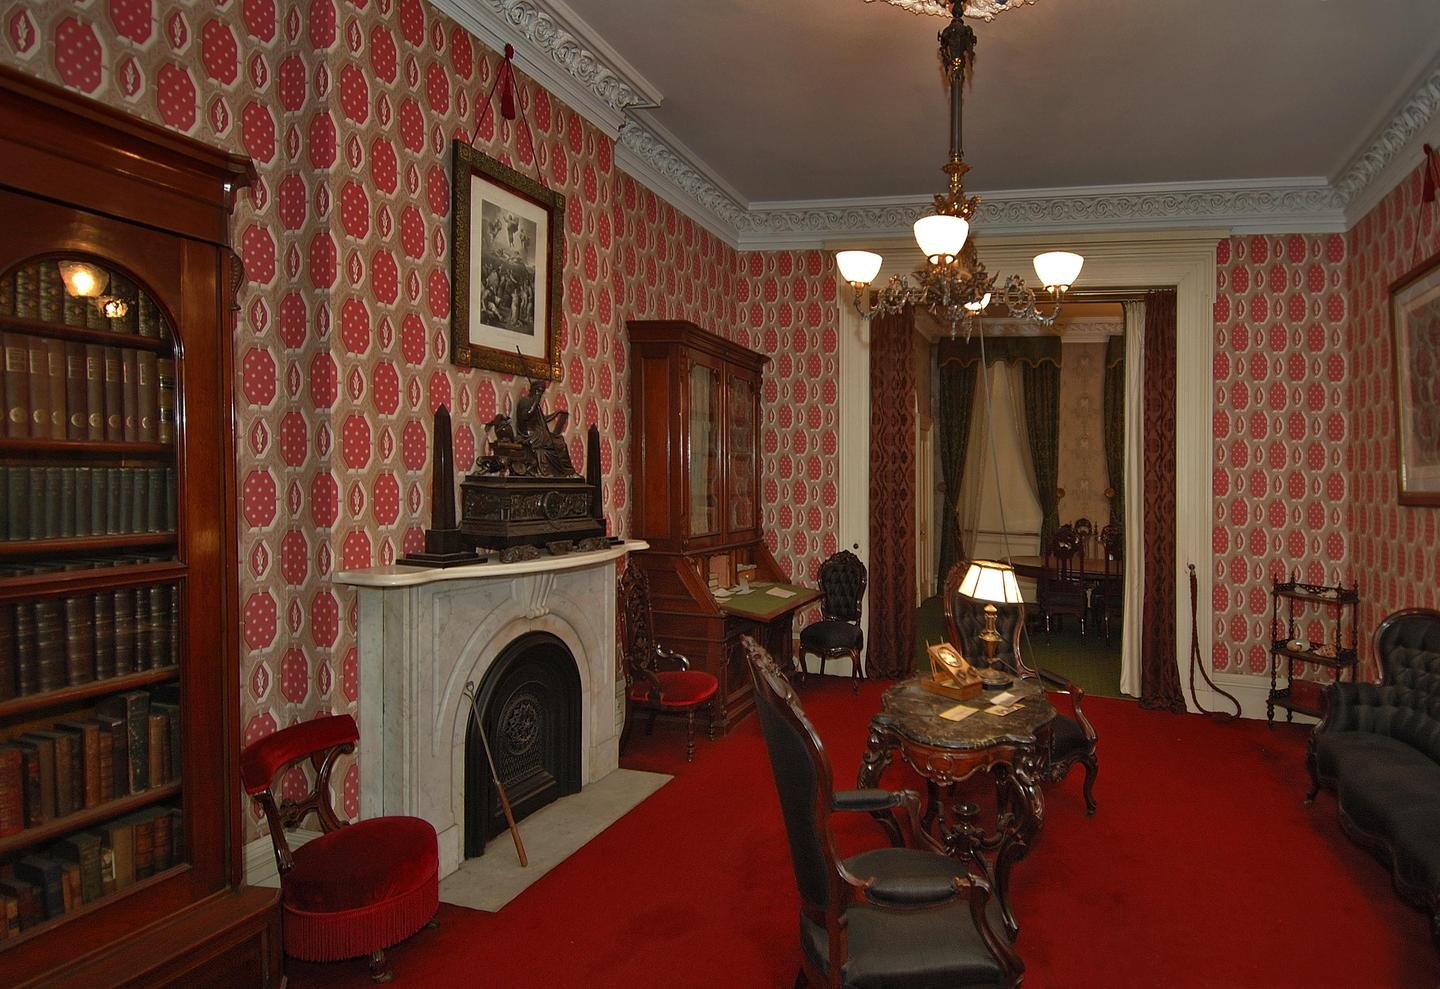 LibraryThe middle parlor, or library, at Theodore Roosevelt Birthplace